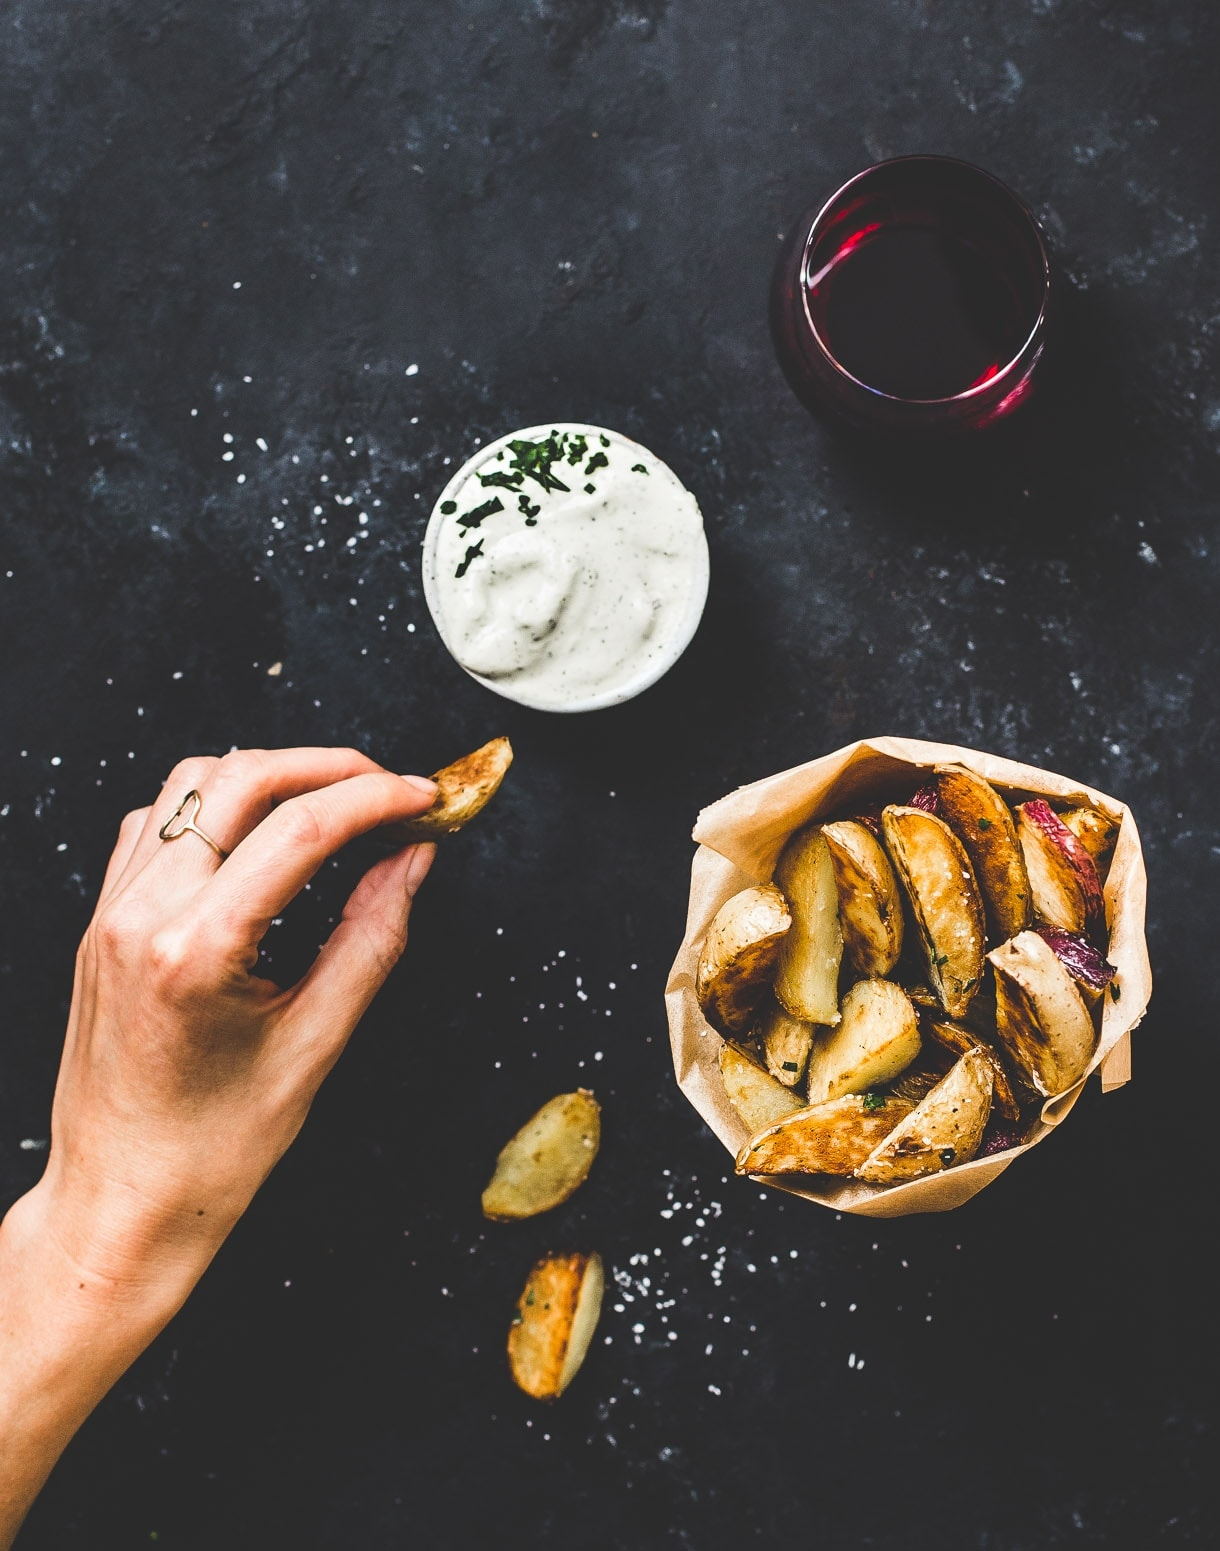 on wholesale classic shoes great deals Extra Crispy Potato Wedges without a fryer, Made For Dipping